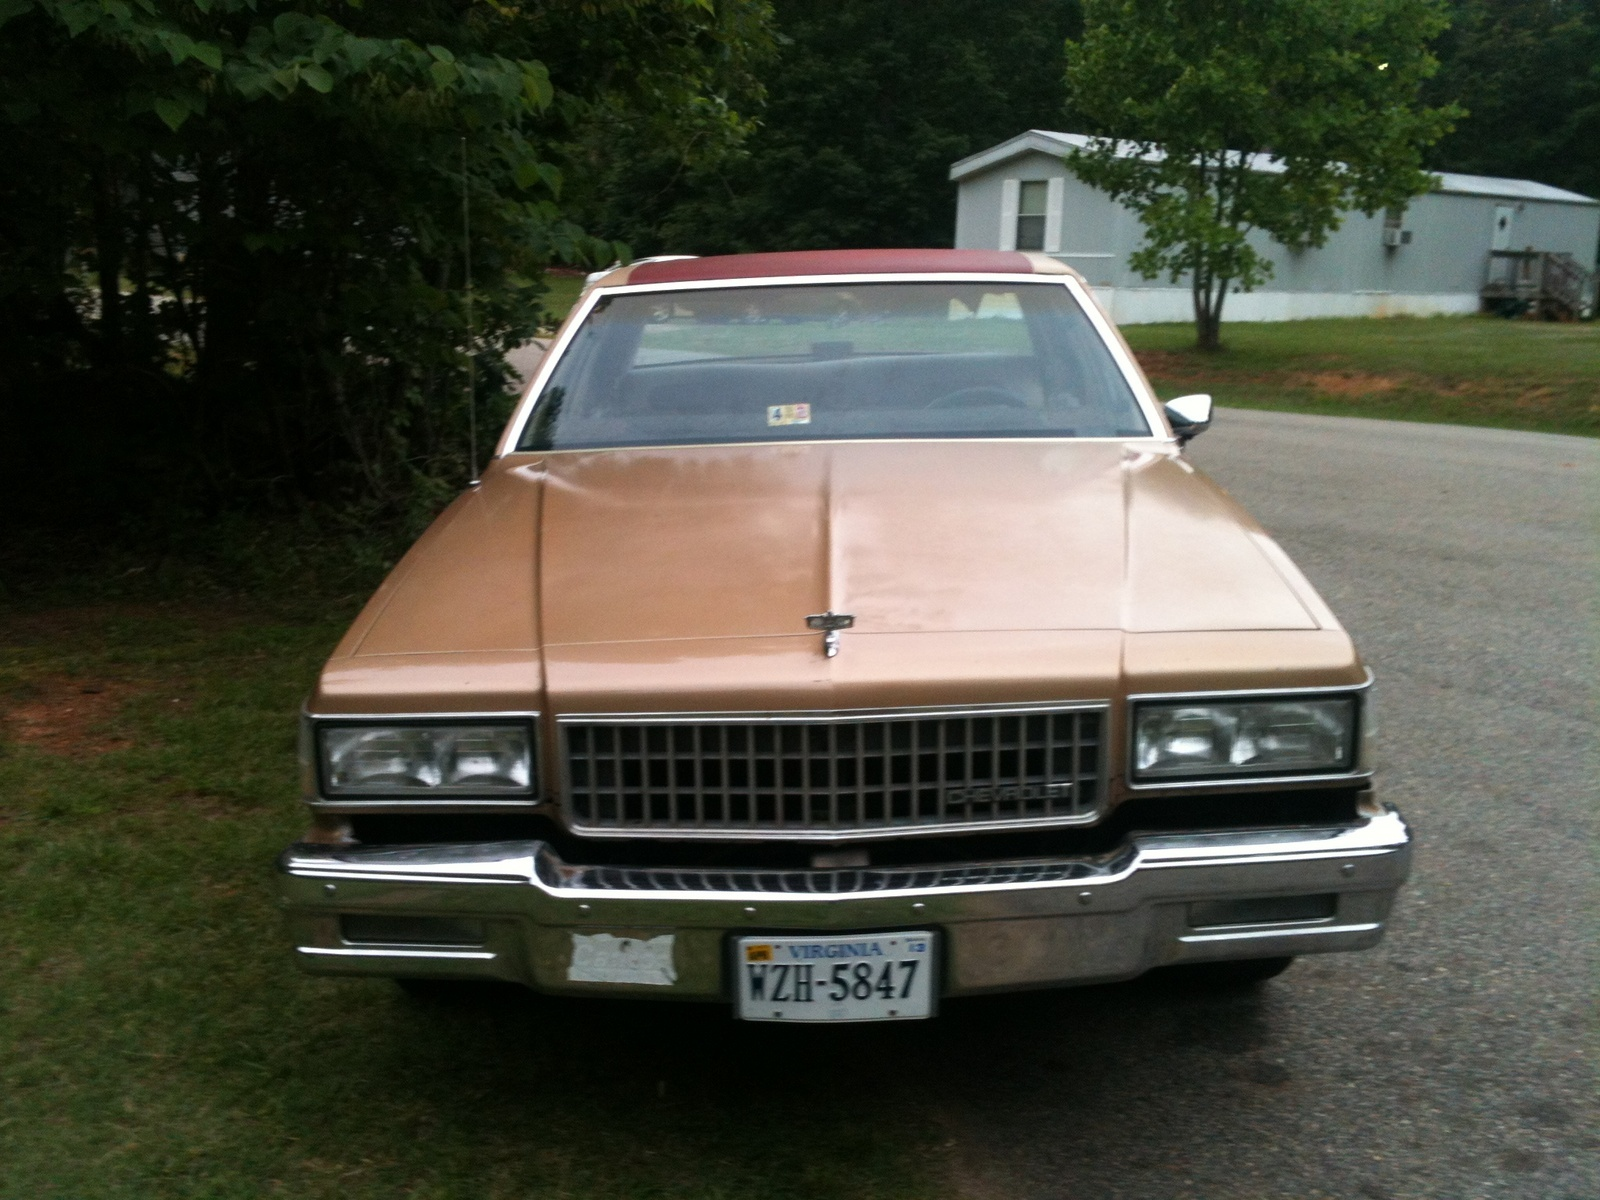 make used cars for chevrolet caprice carstory model police sale results search